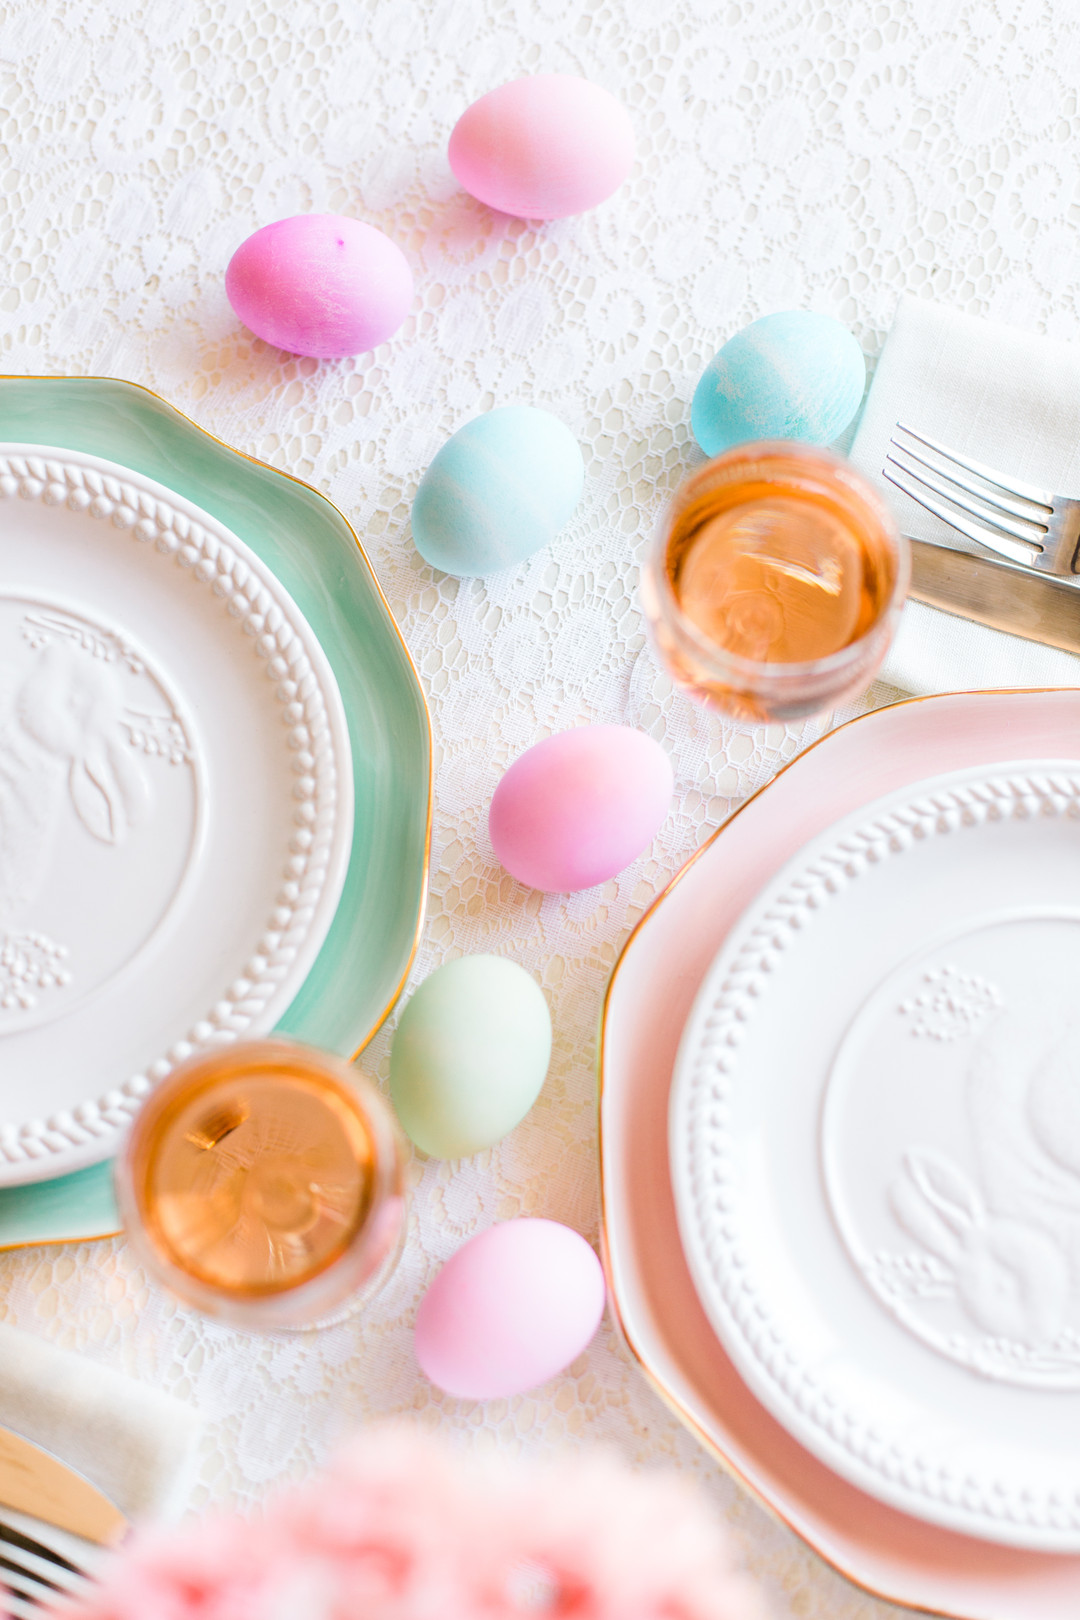 Staal_KristinaStaalPhotography_KristinaStaalPhotographyEasterTablescape201623_big Easy Entertaining: Easter Brunch Inspiration for Two